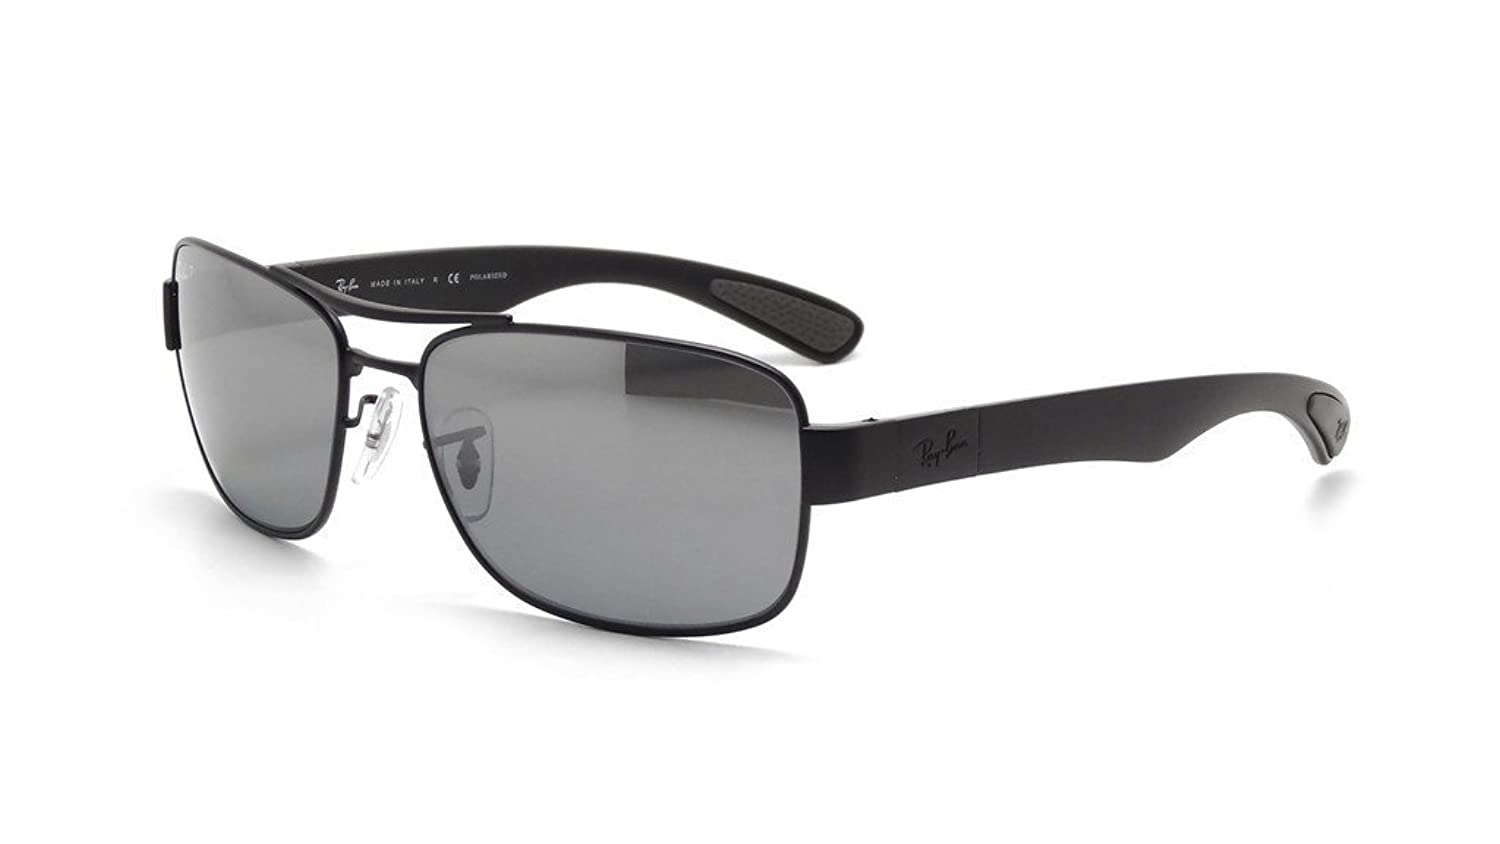 Ray-Ban RB3522 006/82 64 mm/17 mm PoW4K8